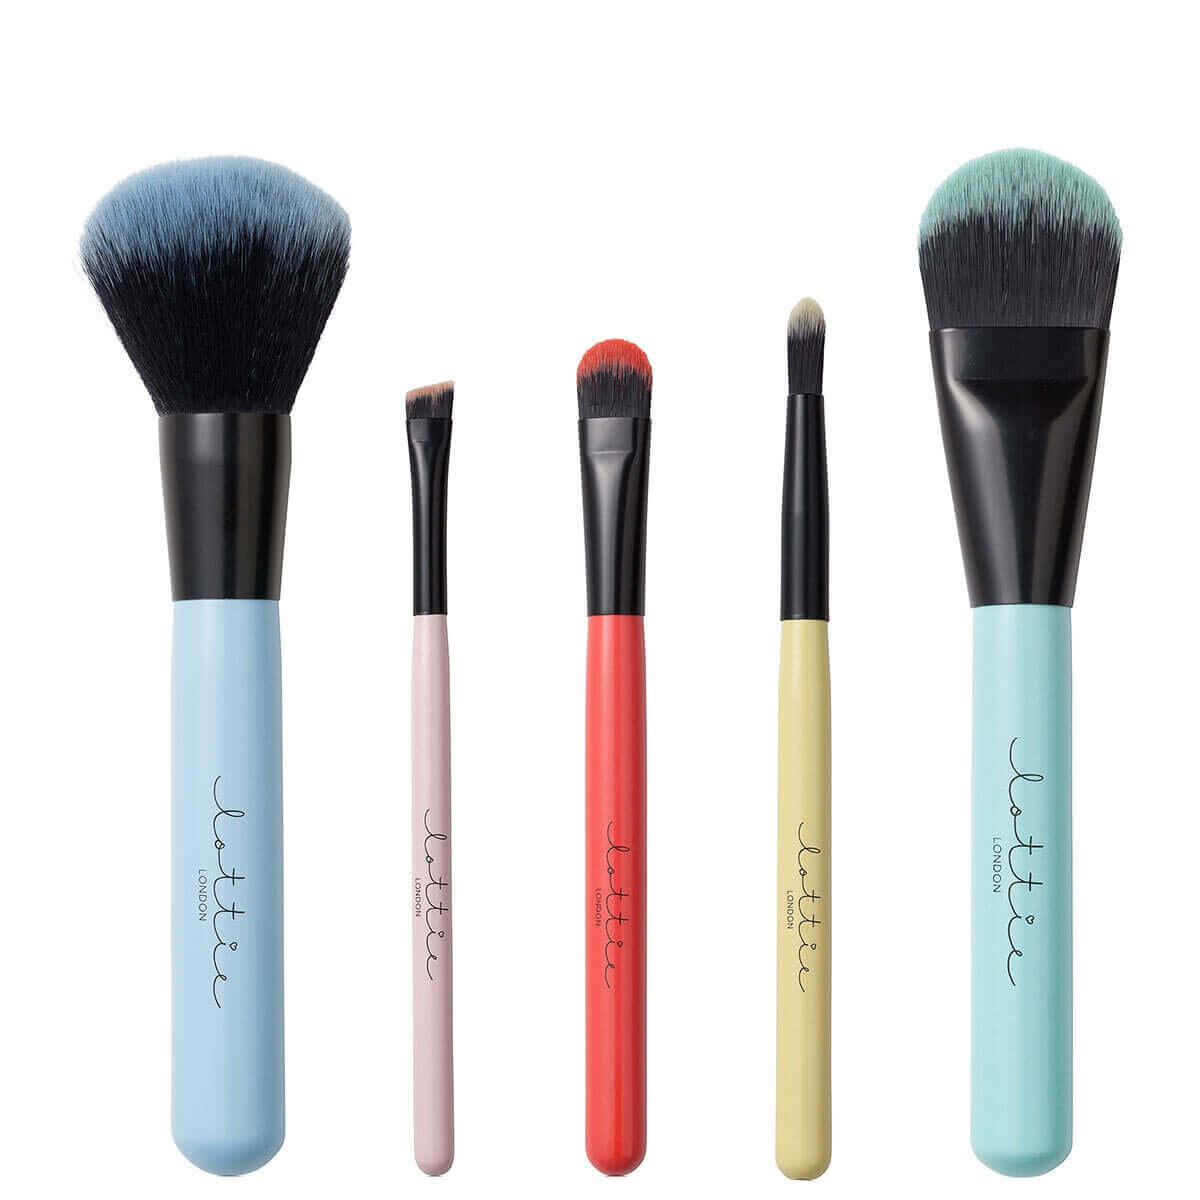 The Best Of The Brushes Collection Fırça Seti